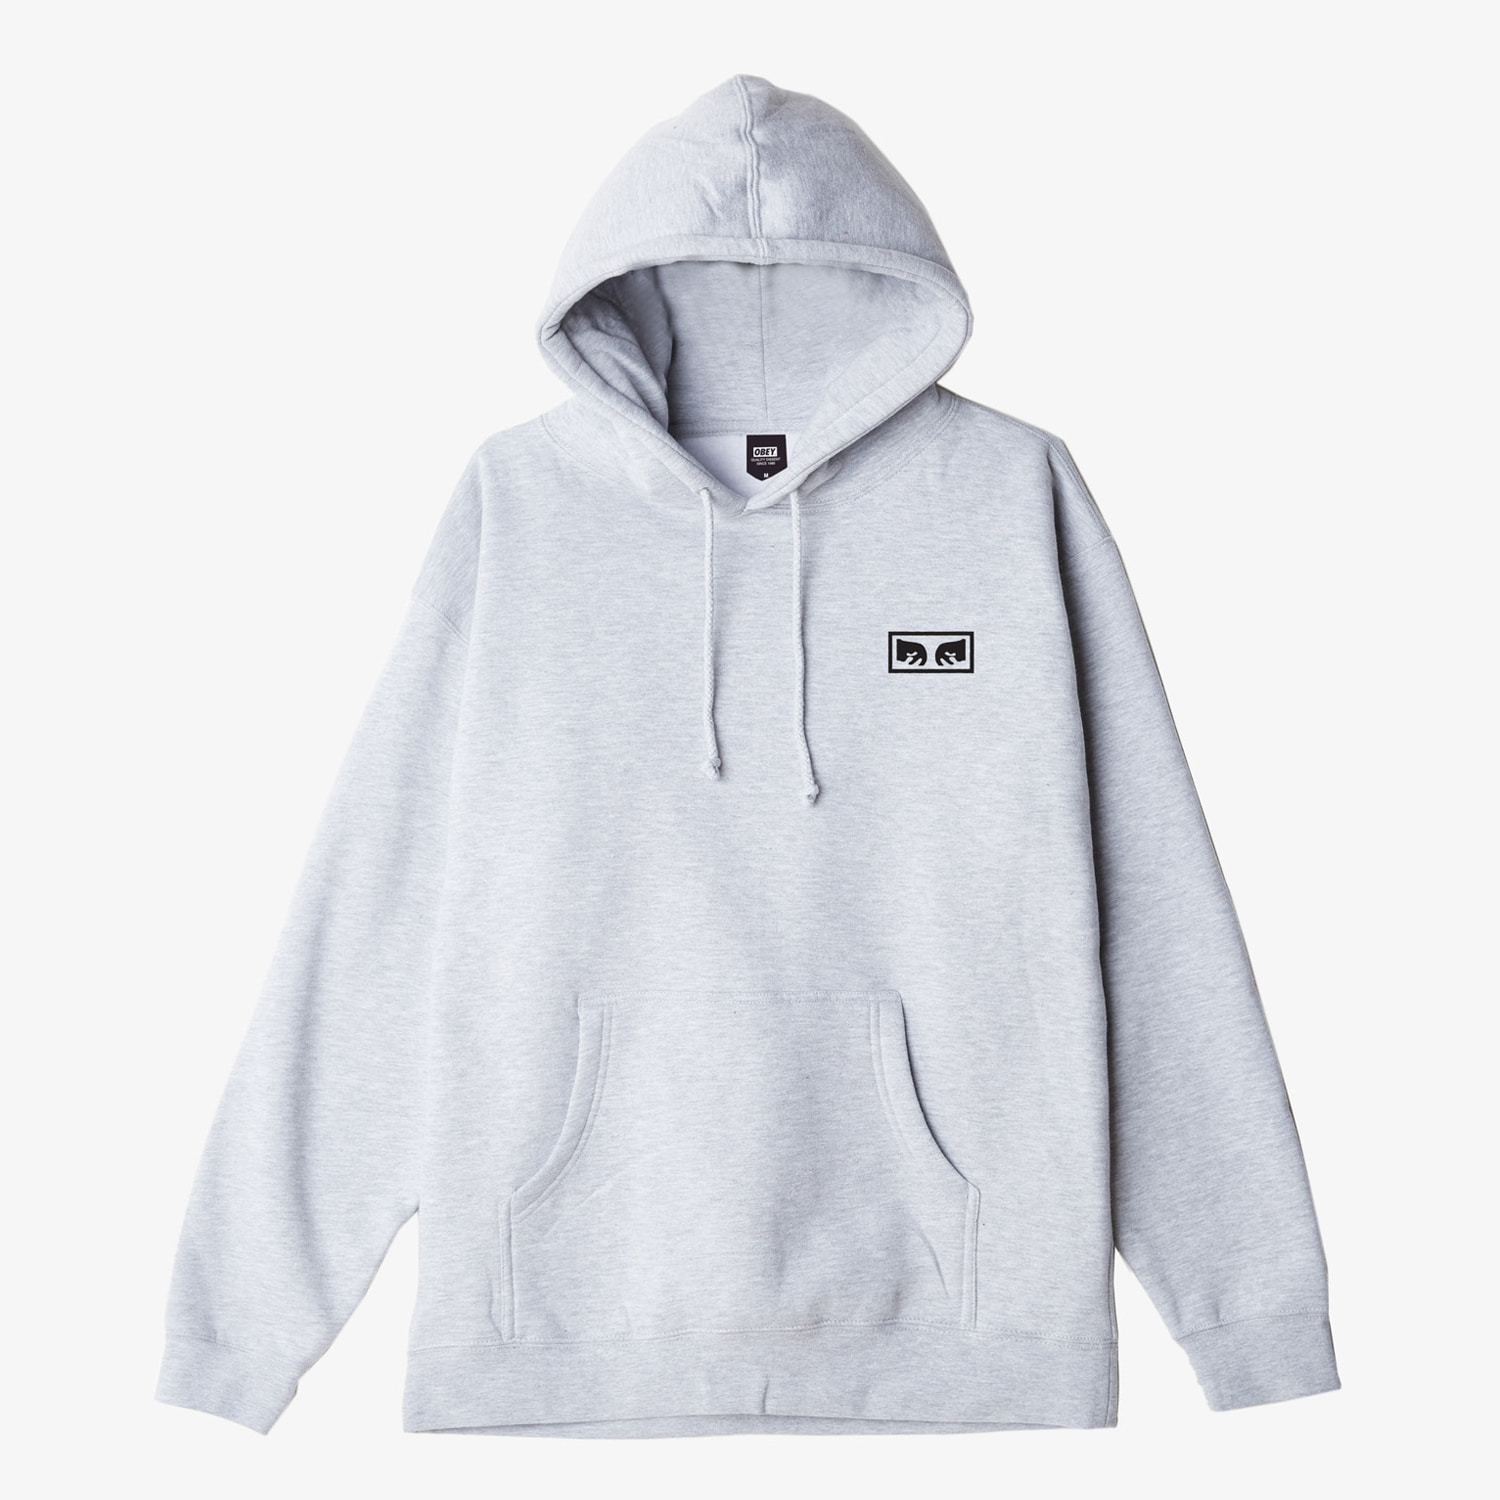 오베이노원 후드NO ONE HOODHEATHER GREY